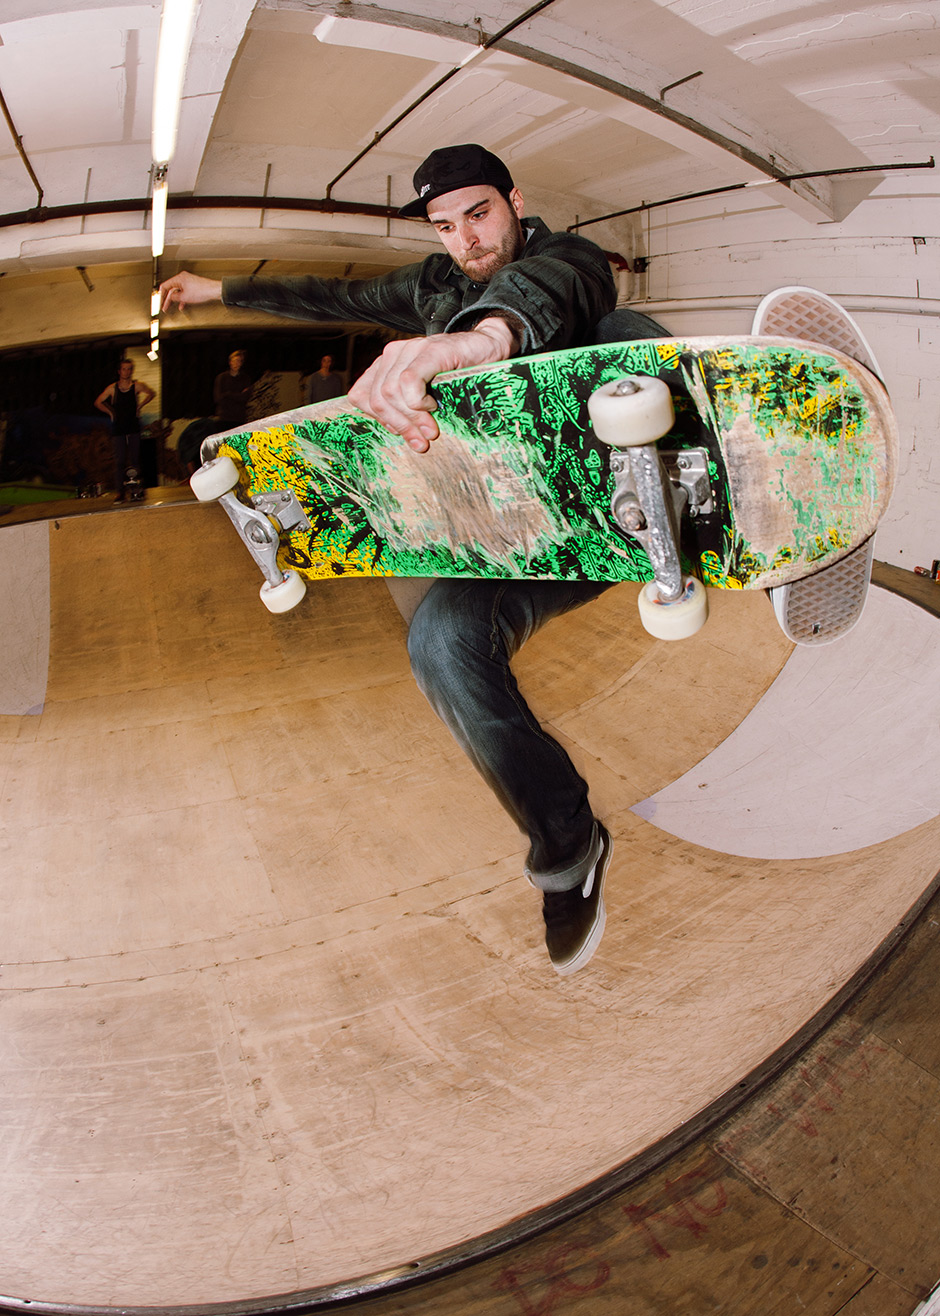 Darren Pearcy, Boneless, The Boardroom, Leicester. Photo: Chris Johnson